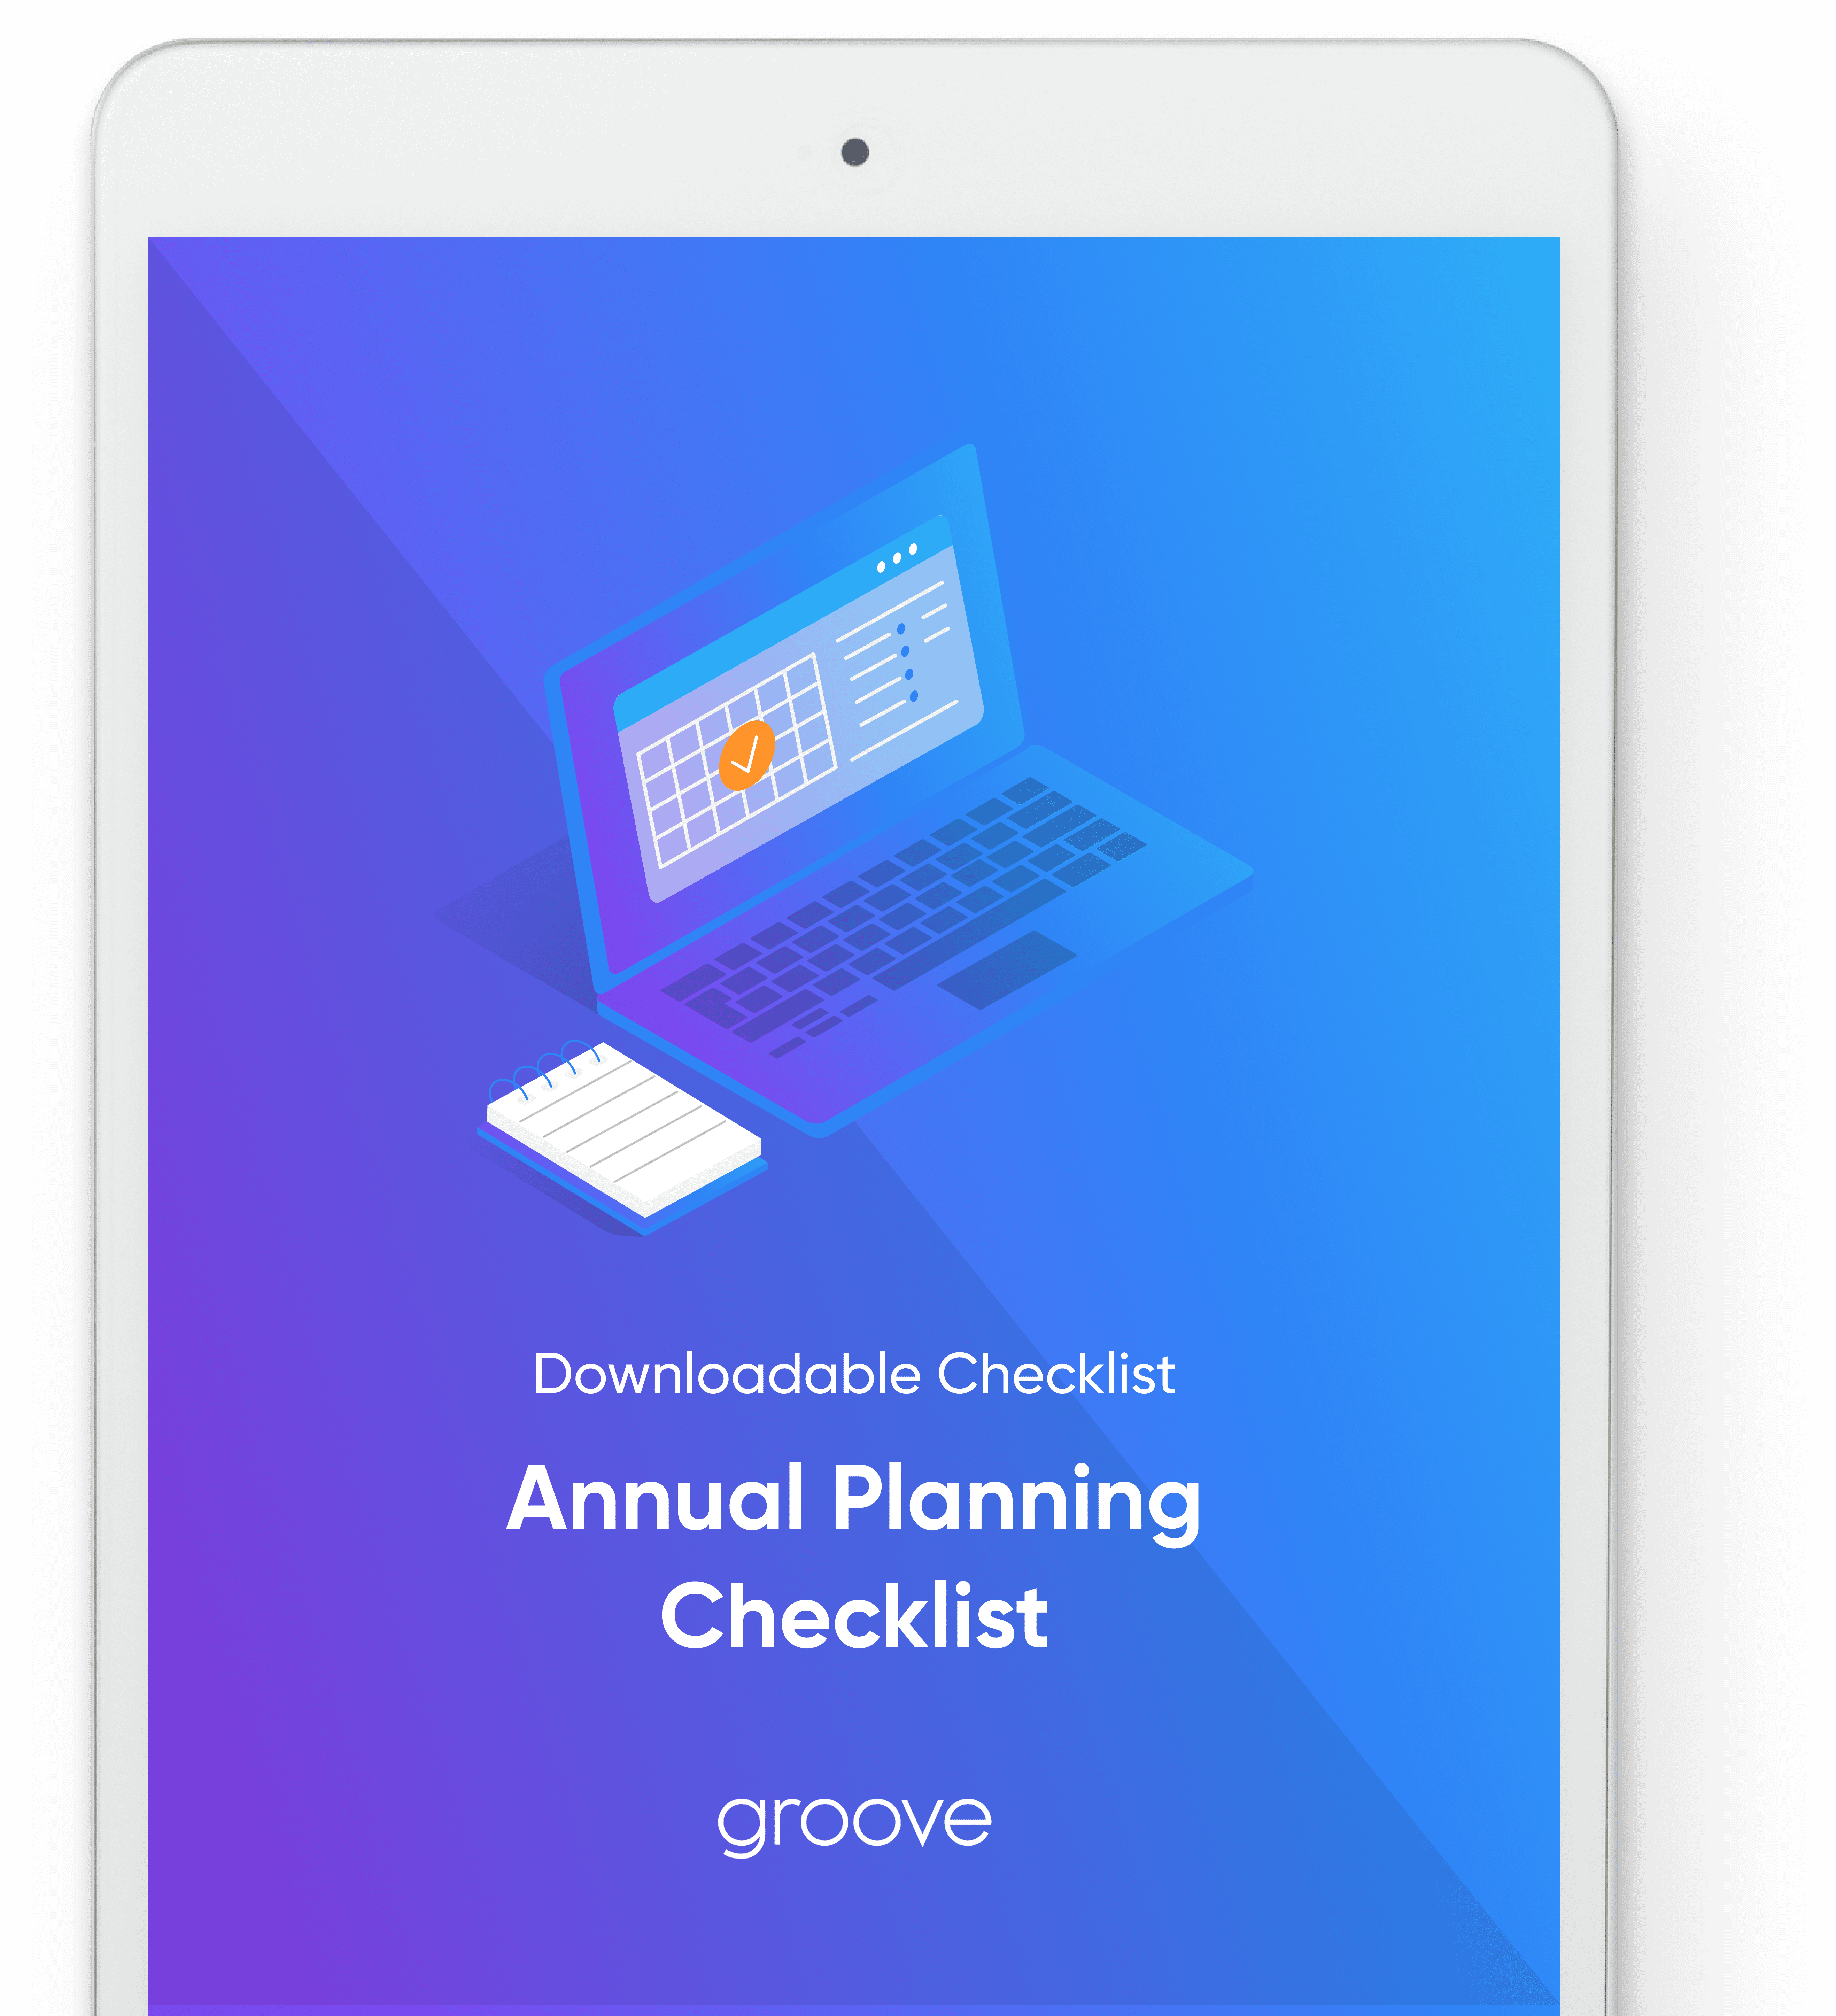 Annual Planning Checklist